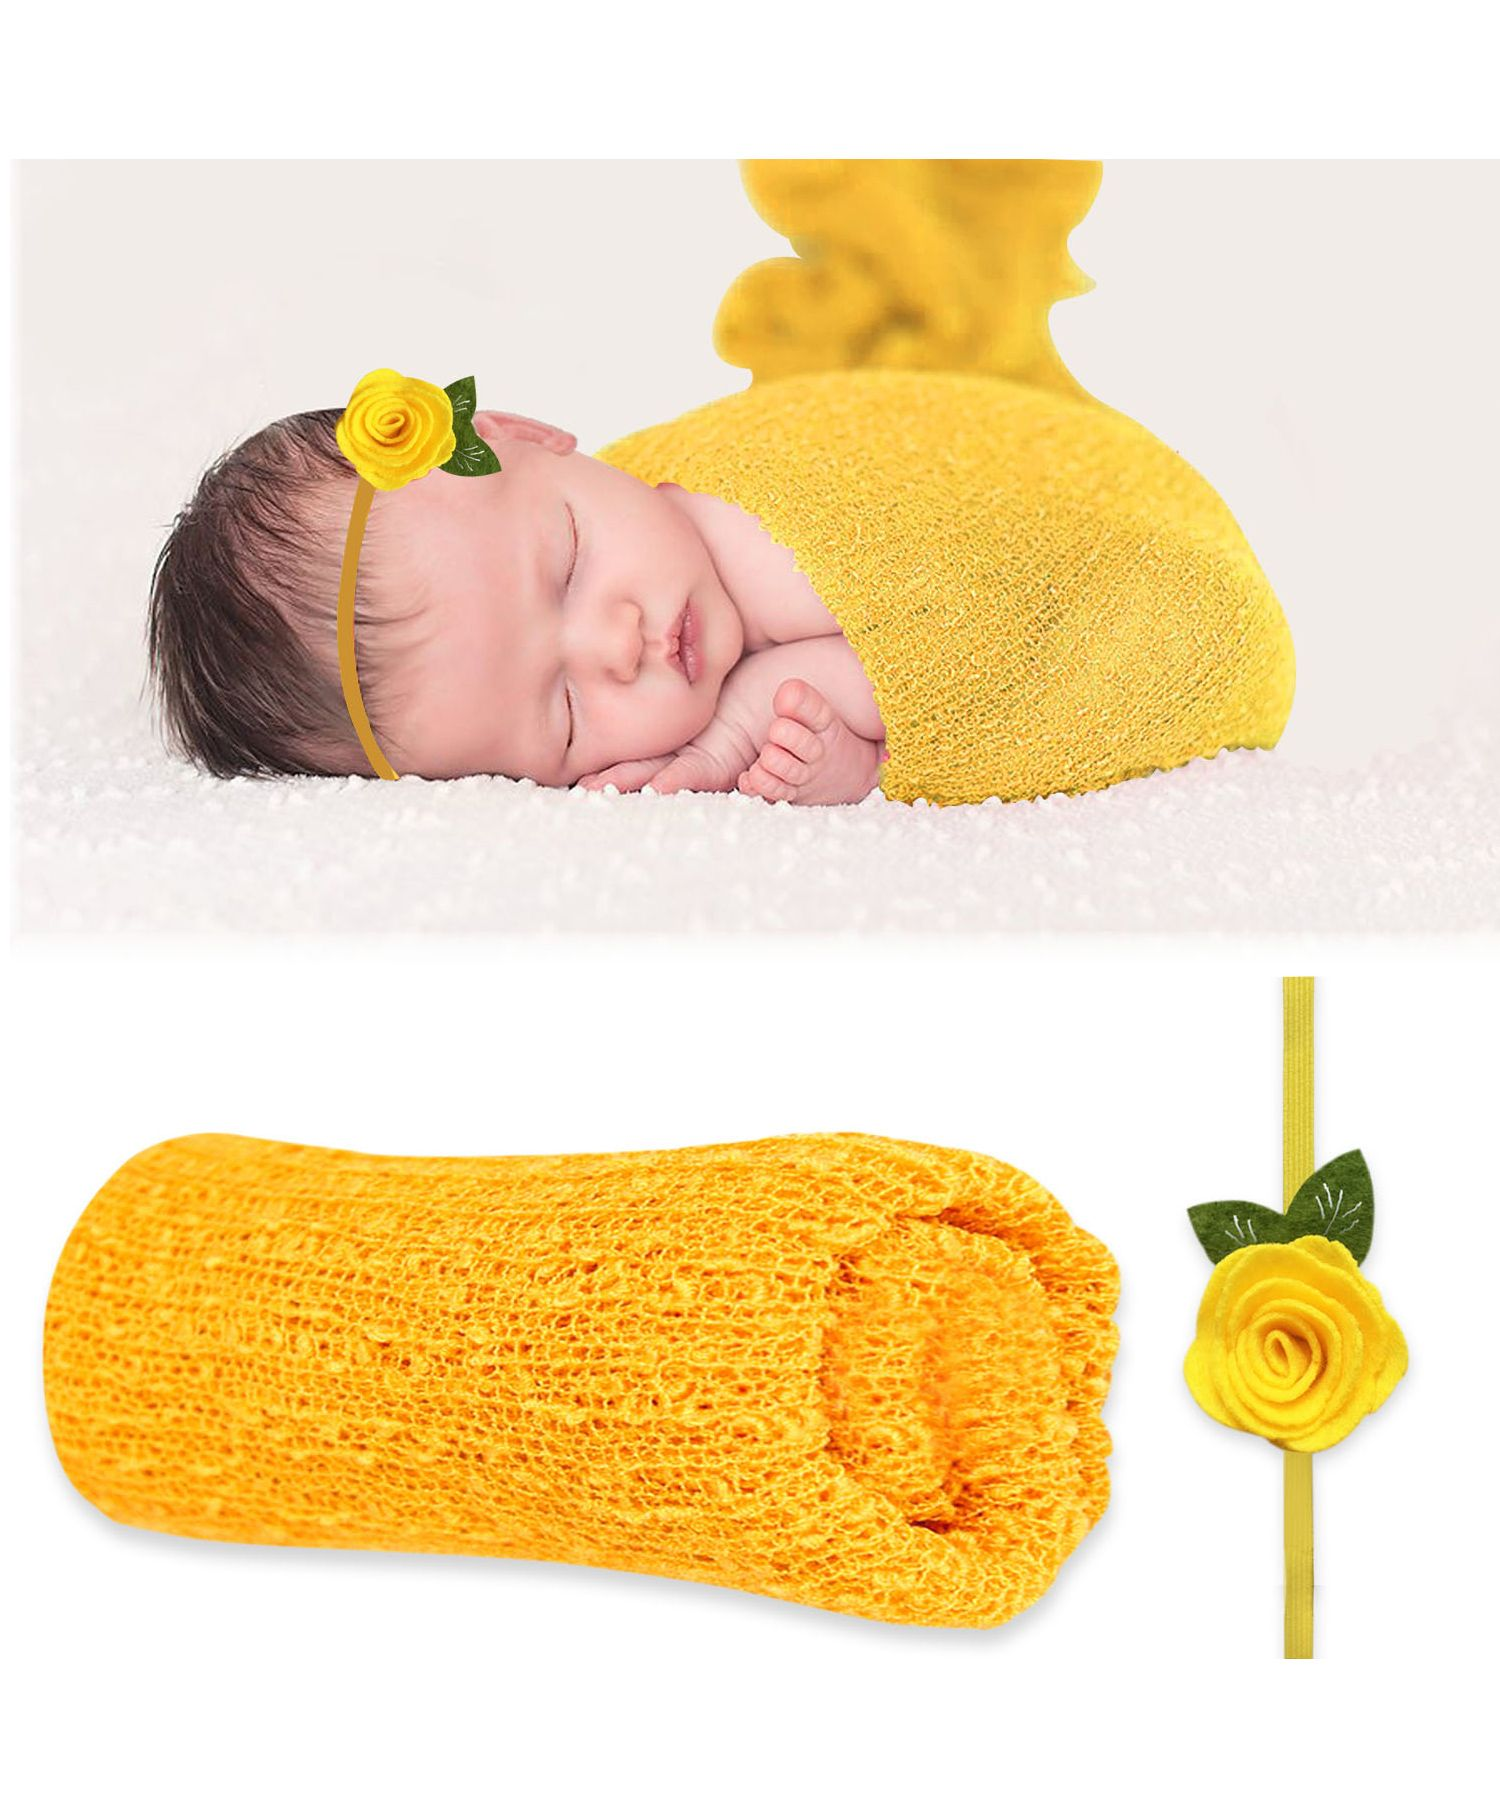 330f5166248 Bembika Newborn Baby Photography Props Set of 2 yellow for Both (0 ...